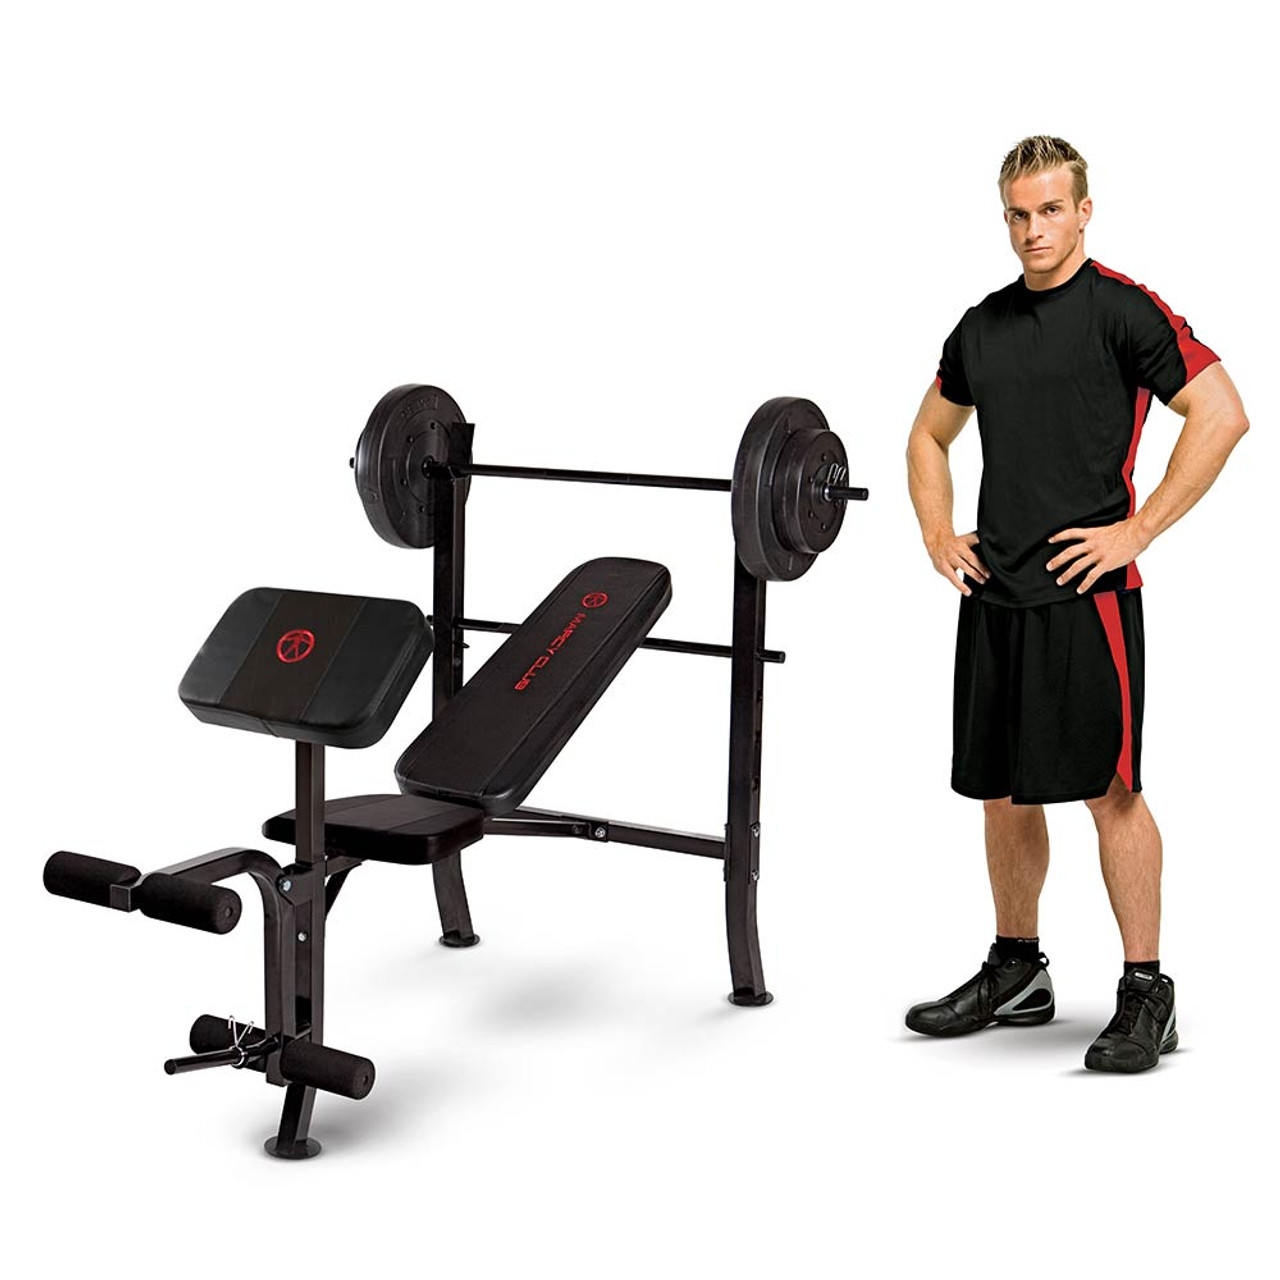 The Standard Weight Bench Marcy MKB-2081 includes weight for your convenience